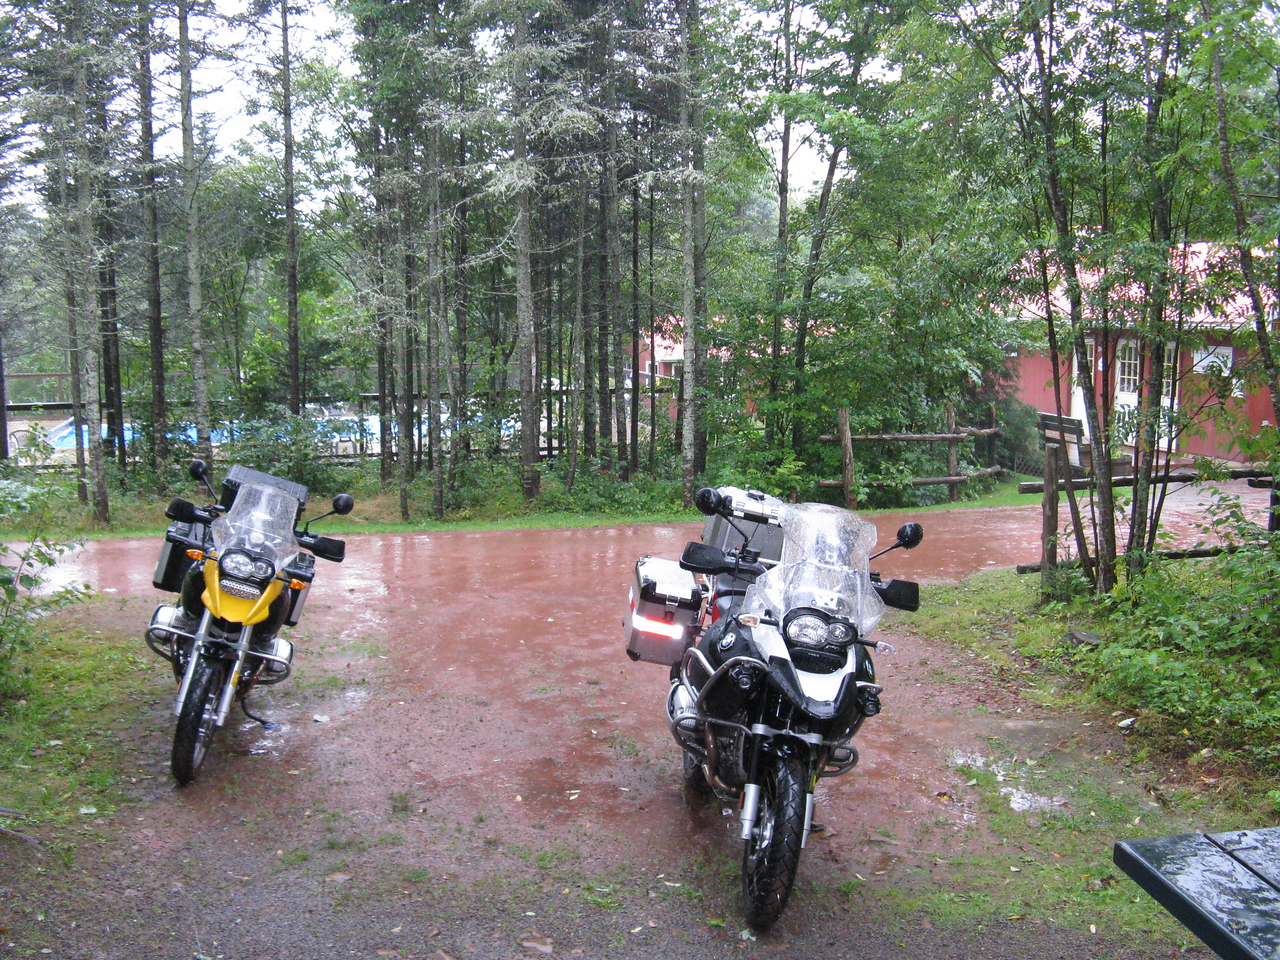 This was a washout day - torrential rain all day. The cabin was a great bargain.